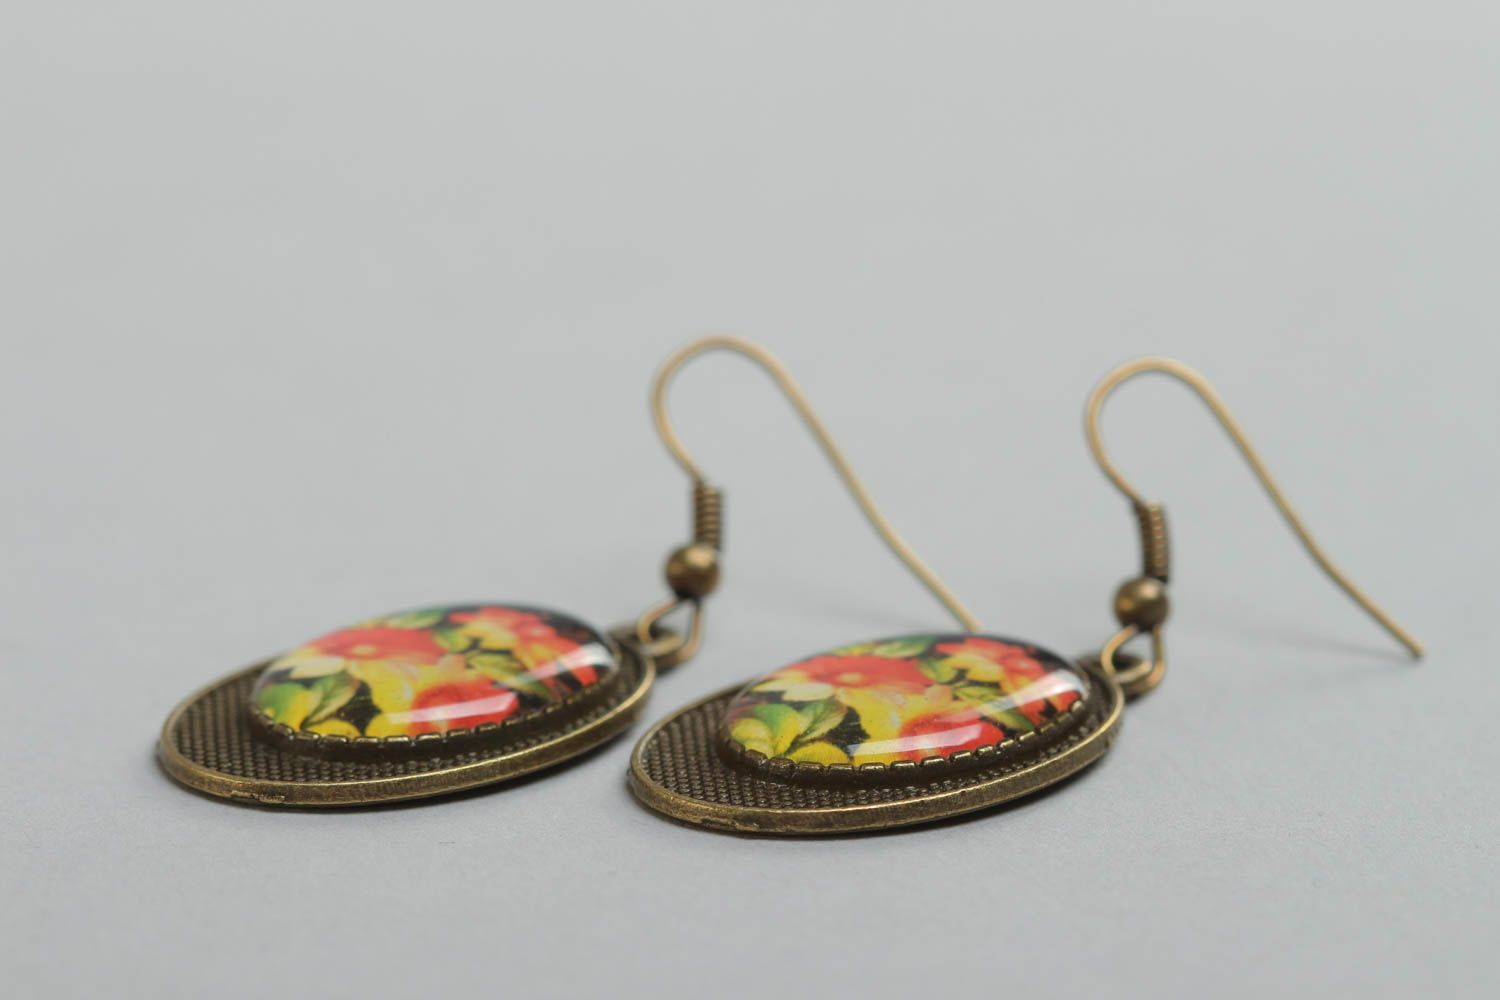 Handmade beautiful vintage earrings with glass glaze and with flowers print photo 3